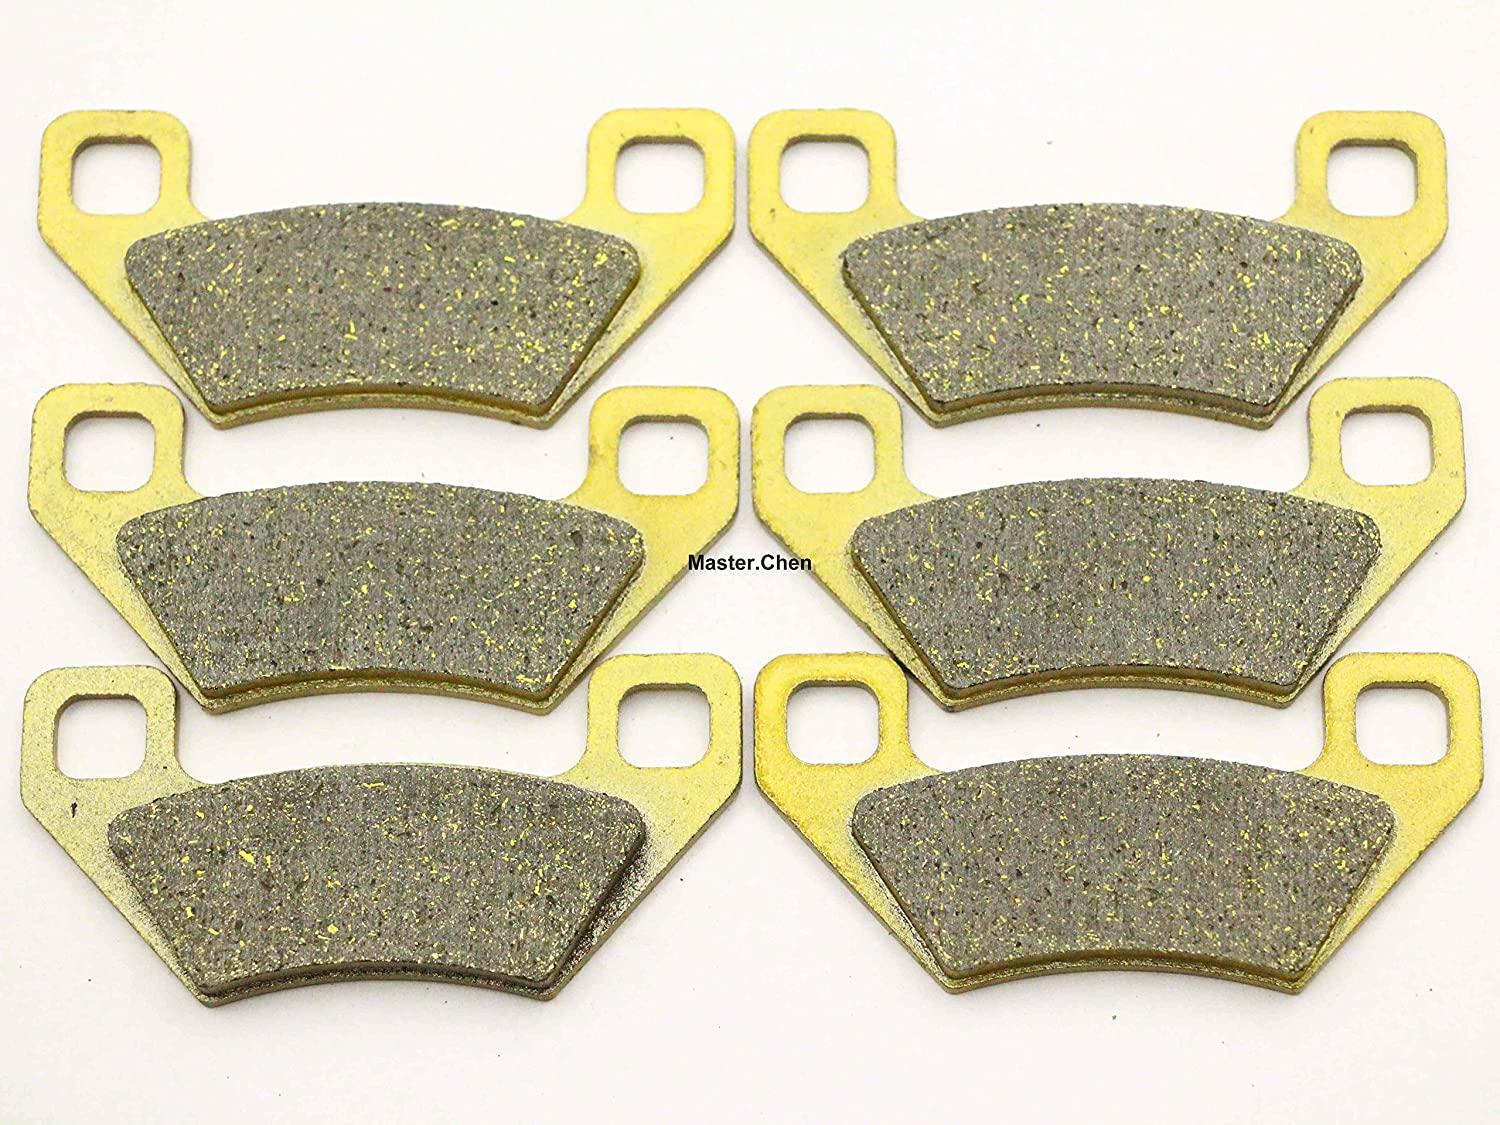 Master Chen Front Rear Brake Pads Brakes for Arctic Cat ATV 650 H1 Auto 2004-2008 Youjia Liangpin